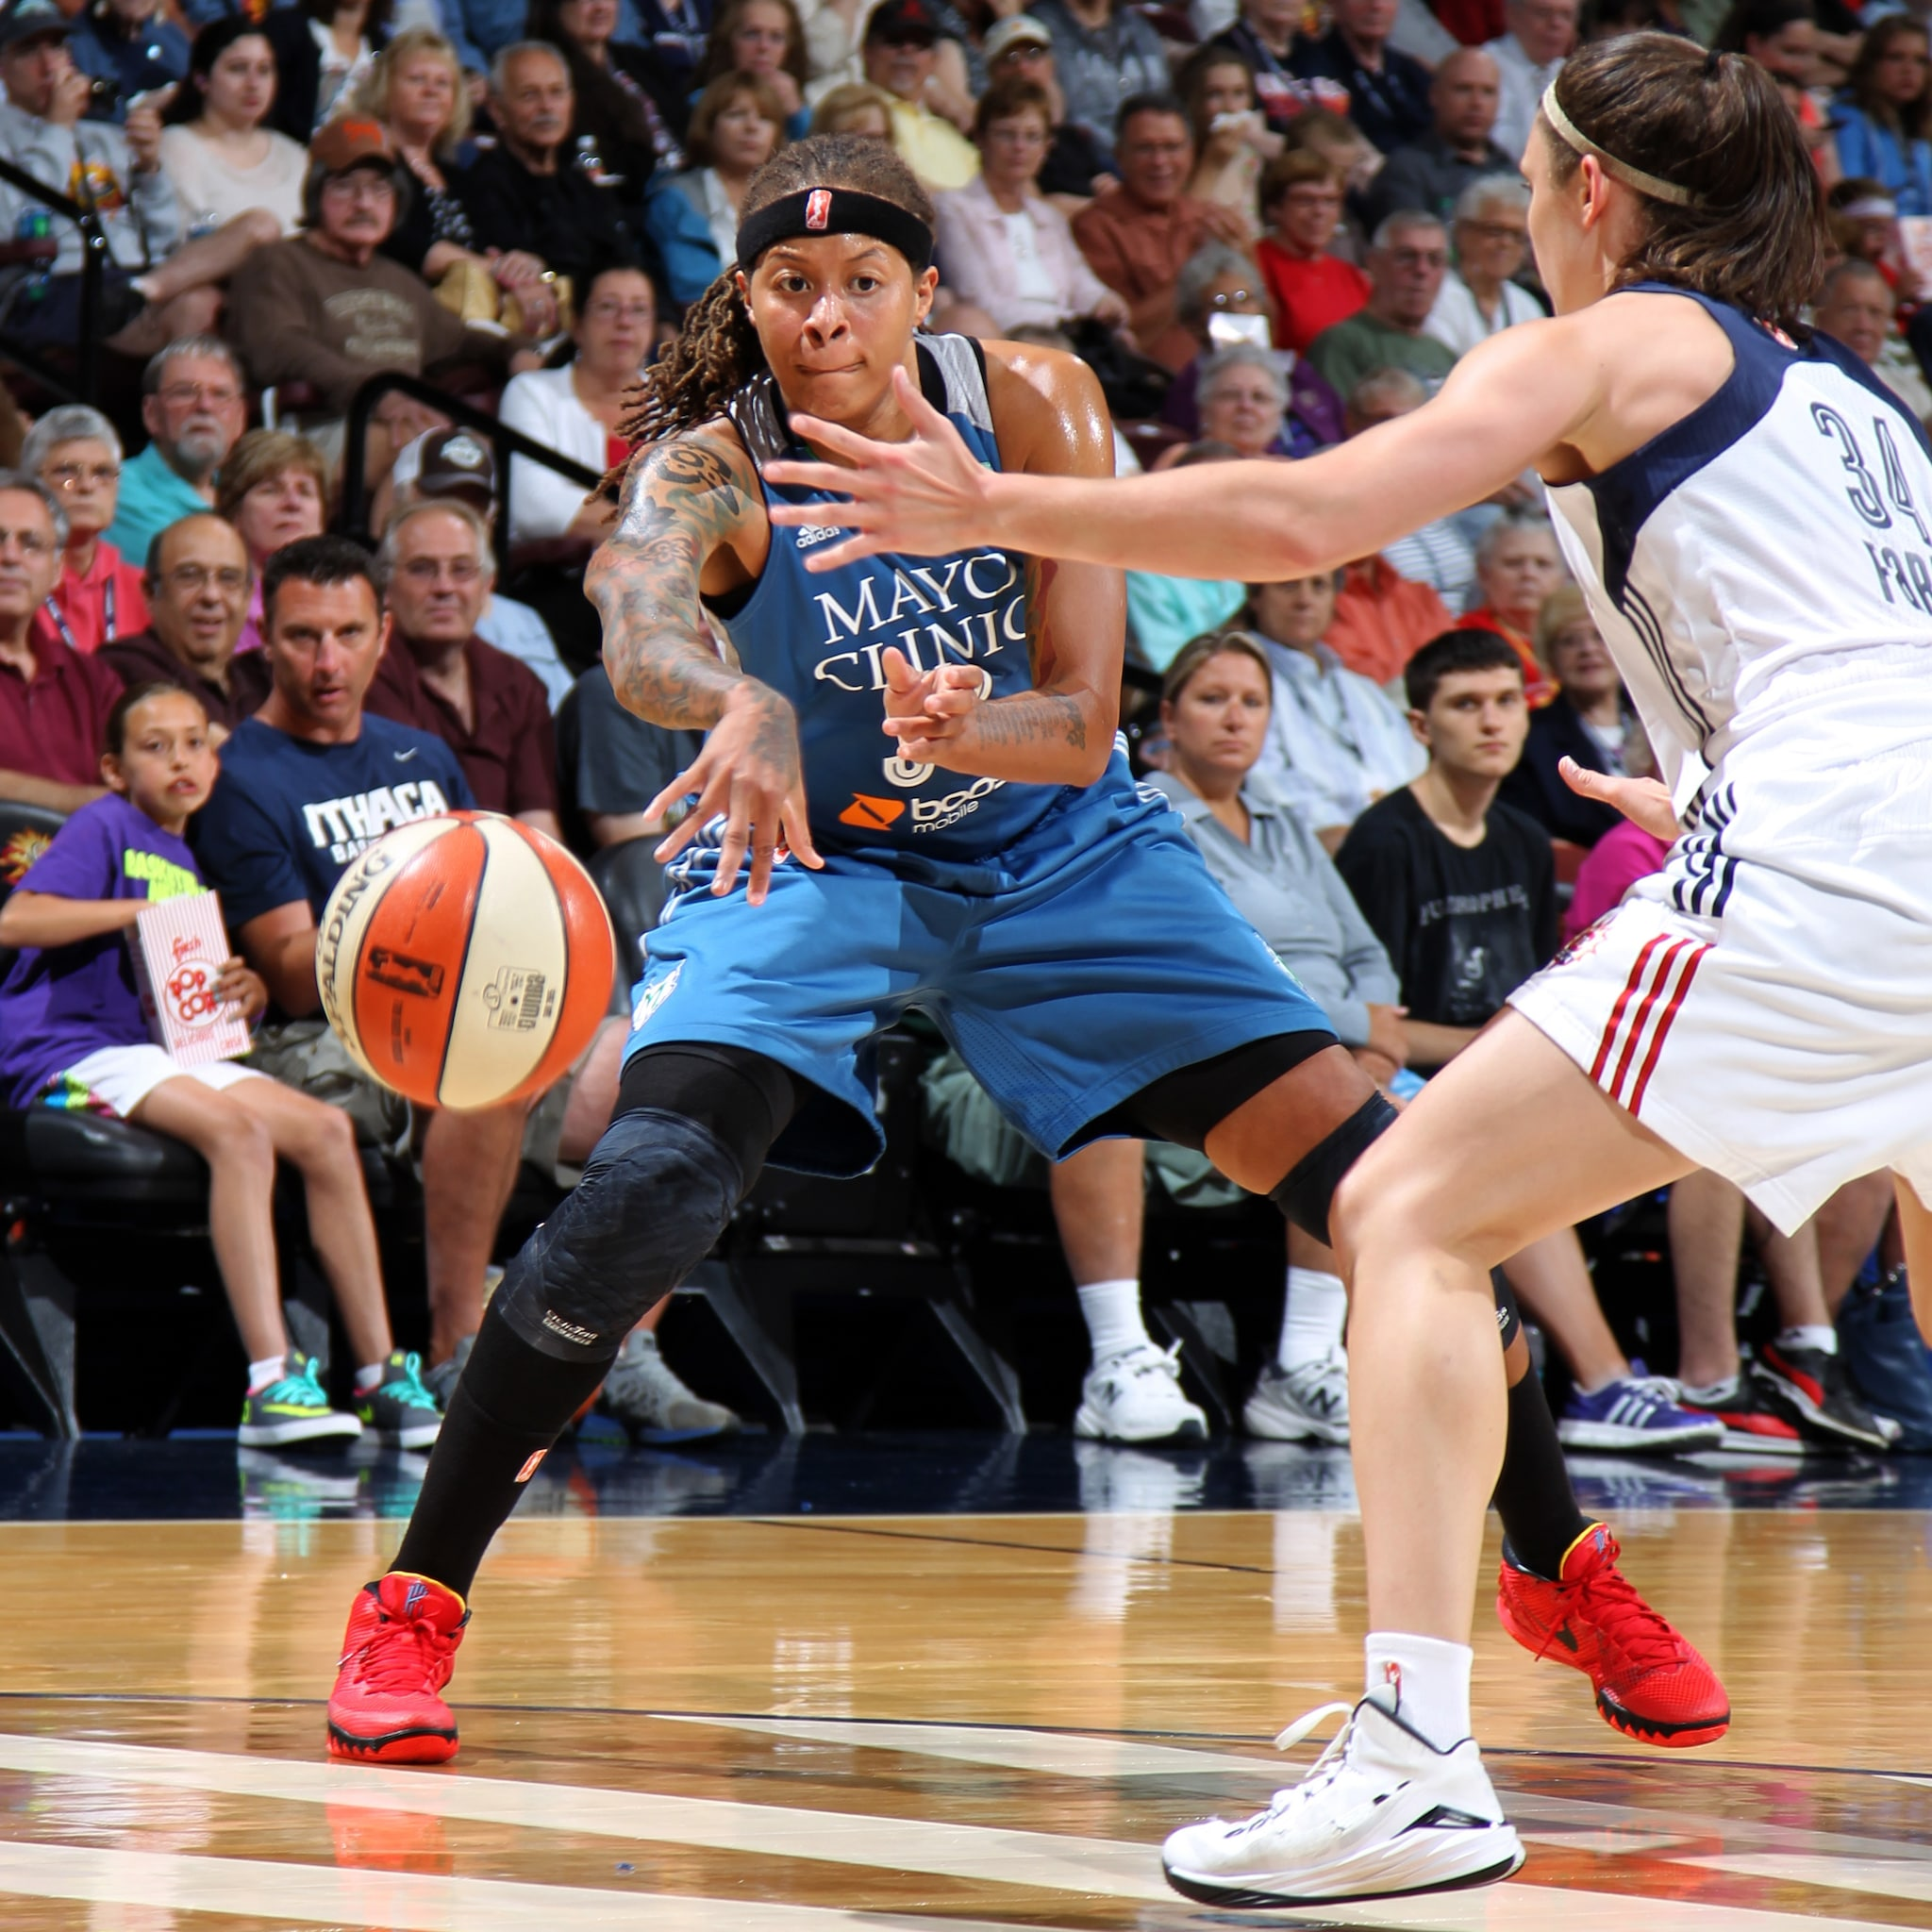 Lynx guard Seimone Augustus had a huge fourth quarter and helped lead the Lynx to a 85-79 victory over the Connecticut Sun last night.